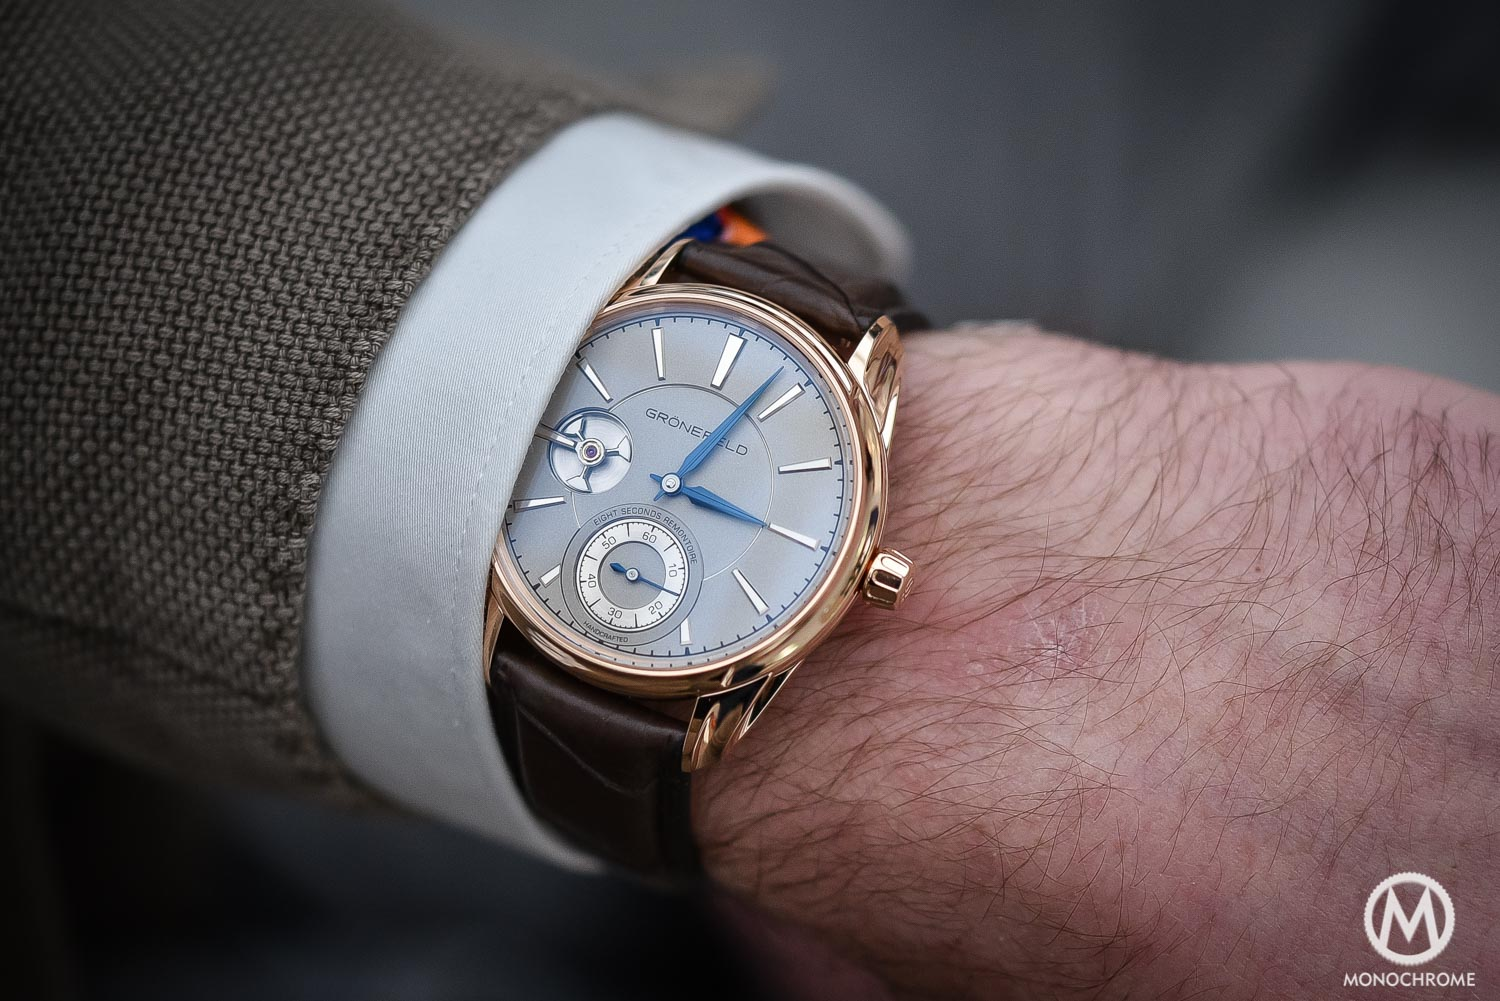 Top-5-Watches-of-Baselworld-2016-Gronefeld-1941-Remontoire